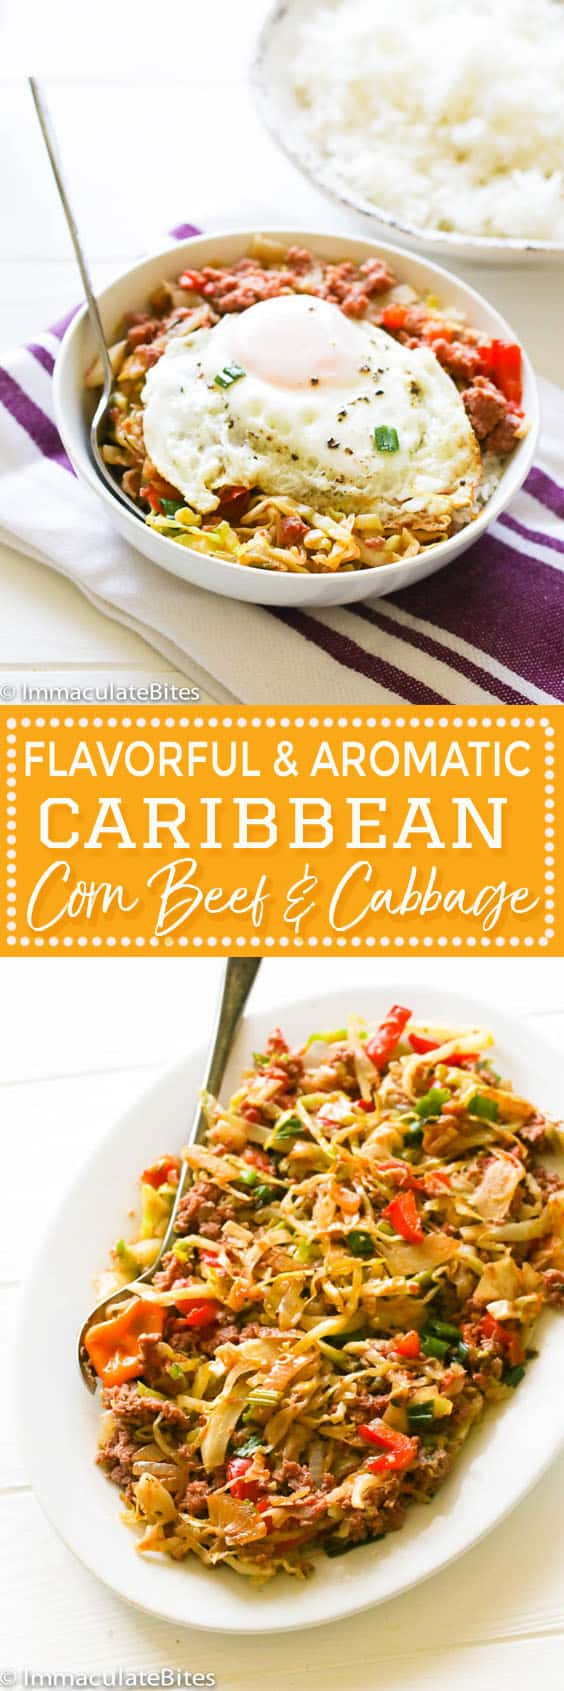 caribbean corn beef and cabbage.2